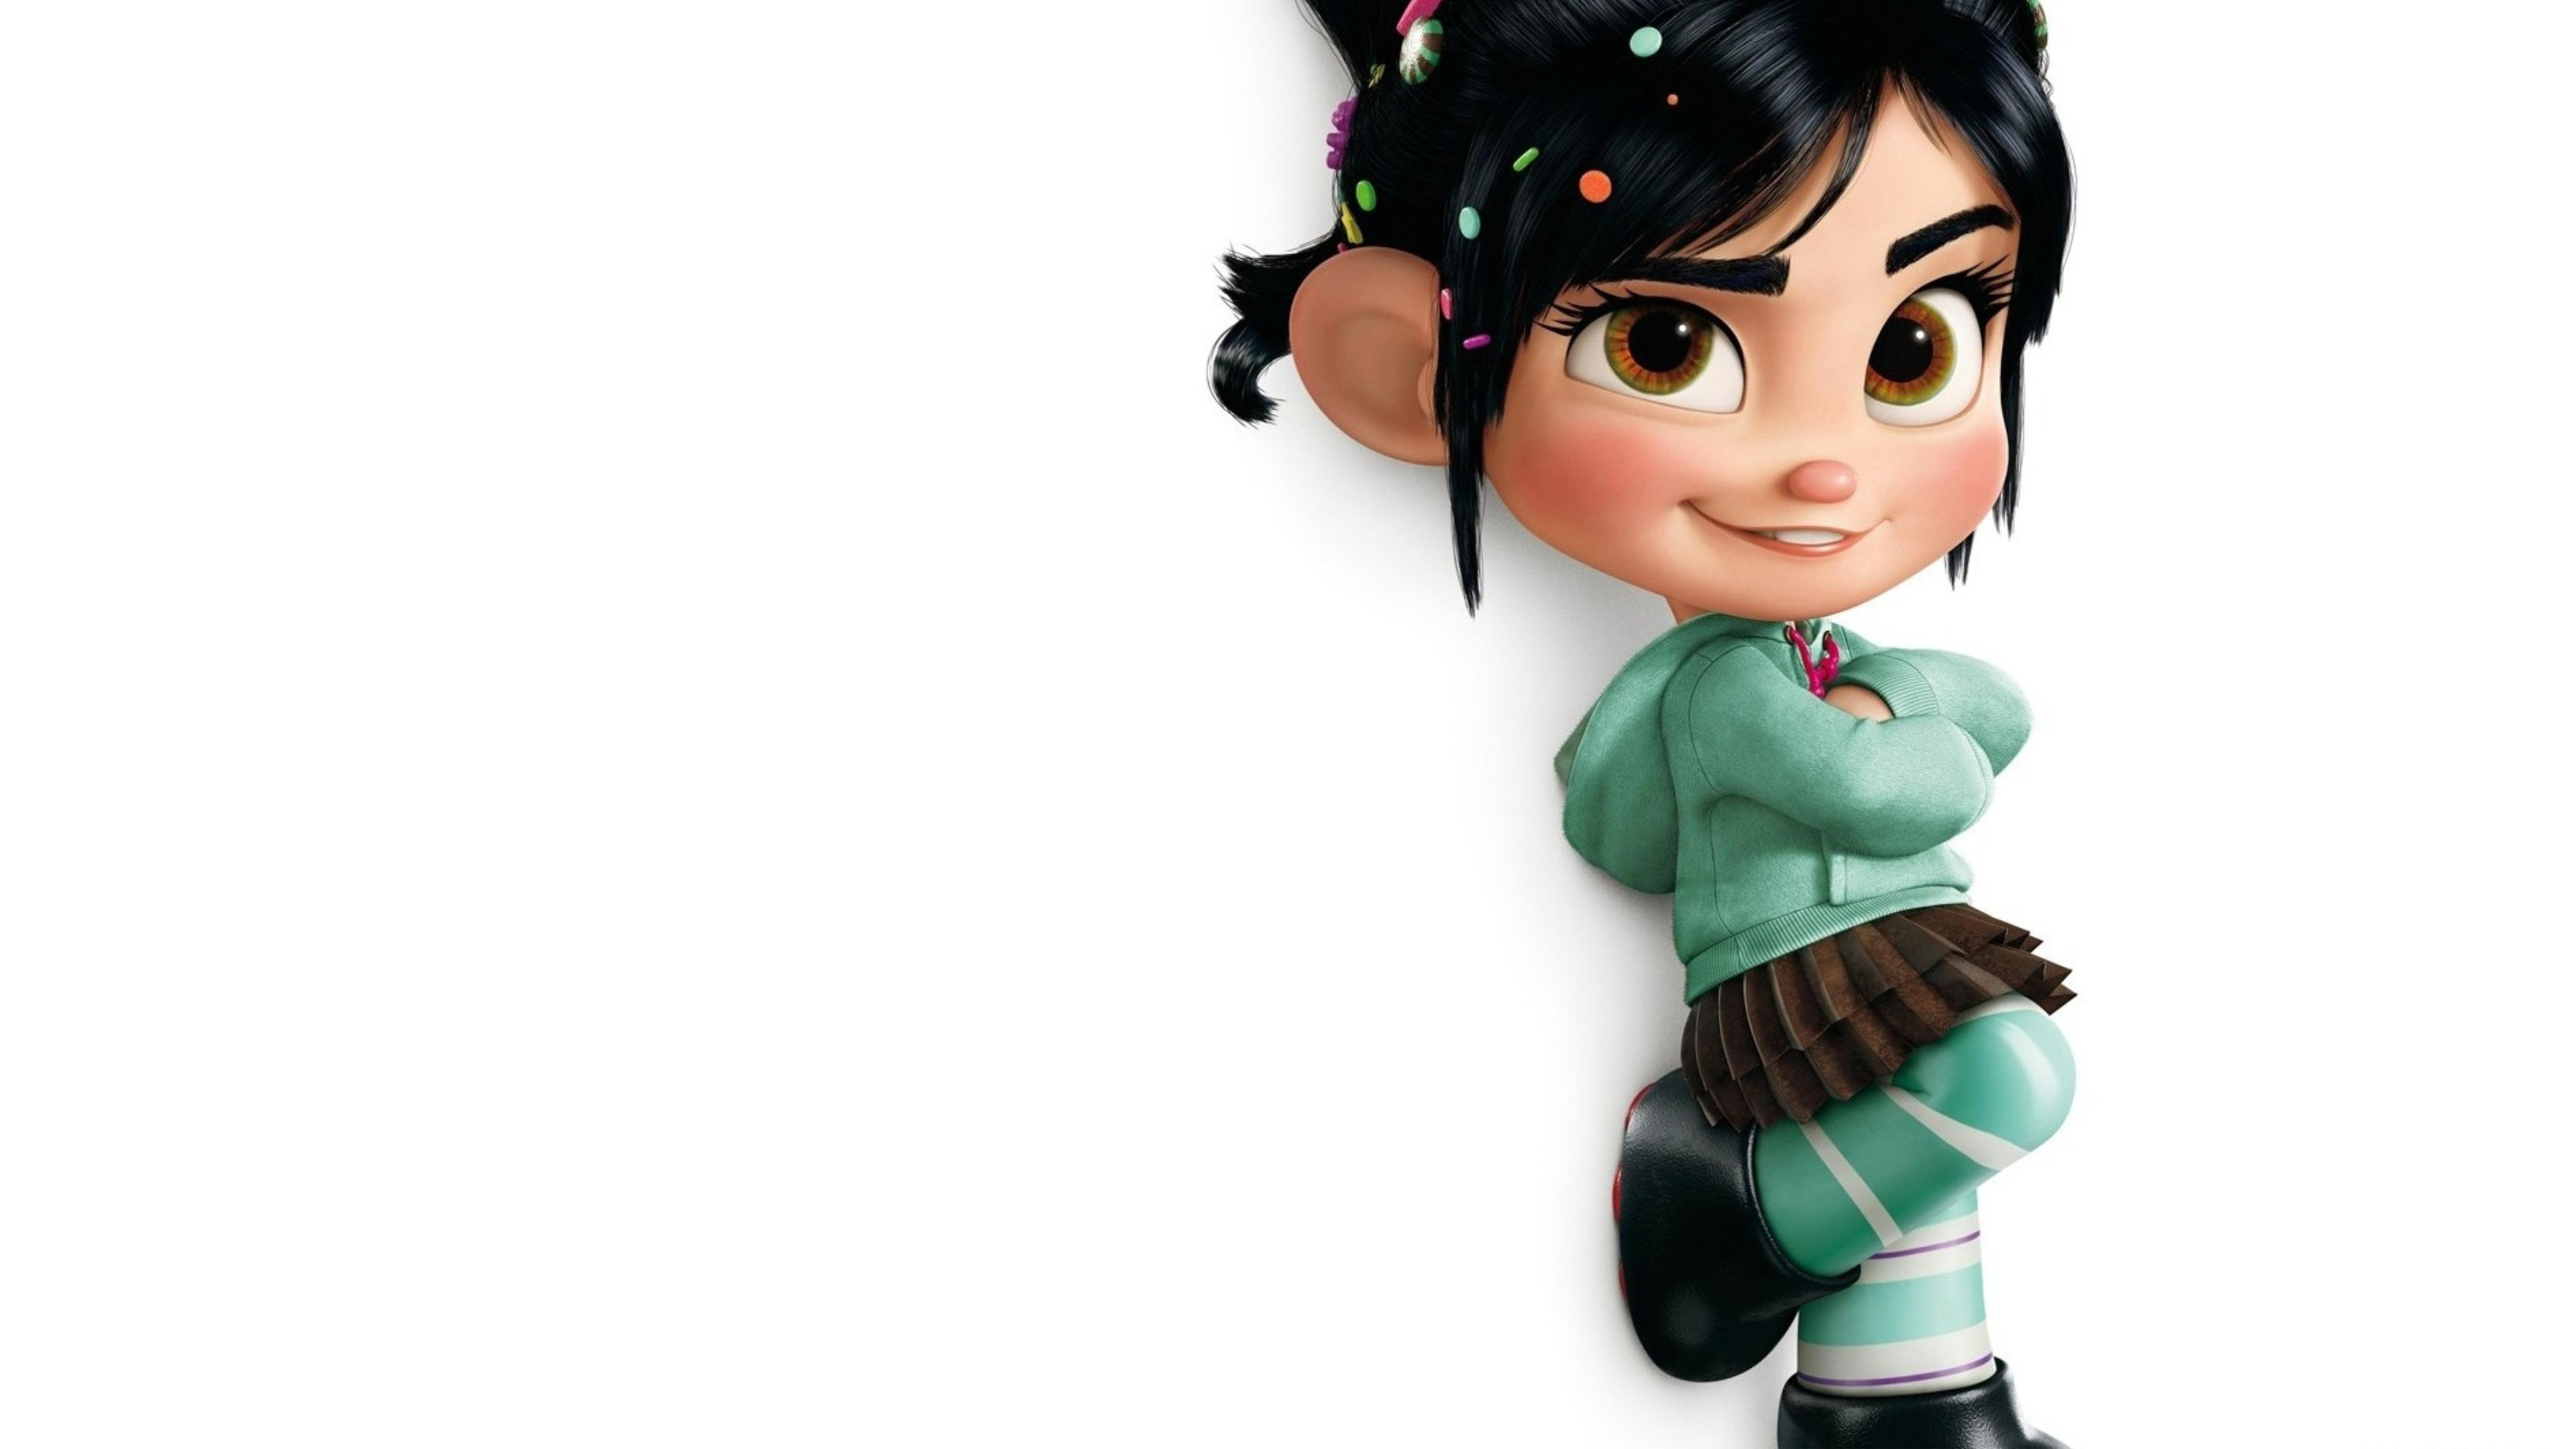 vanellope_wreck_it_ralph-3840x2160